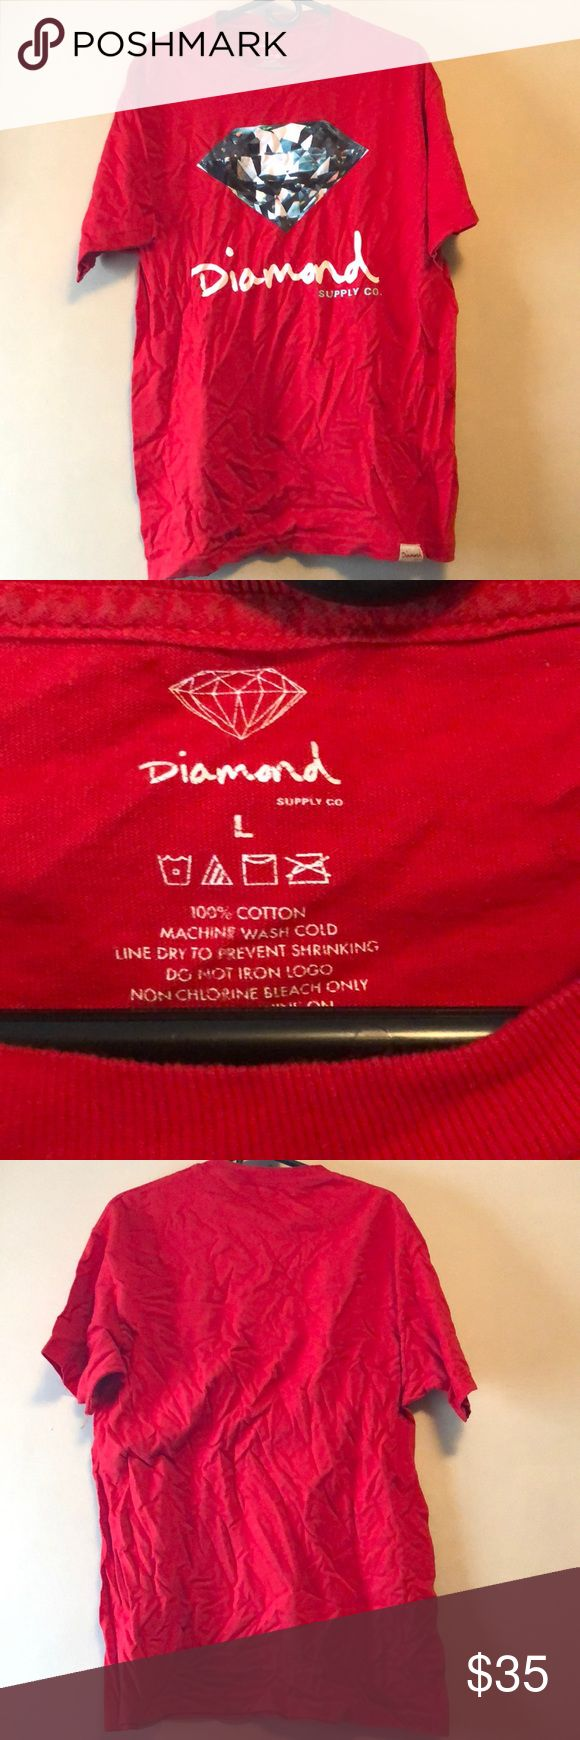 Red diamond supply shirt -excellent condition (just wrinkled) -men's size large  -no stains , tears or rips Diamond Supply Co. Shirts Tees - Short Sleeve